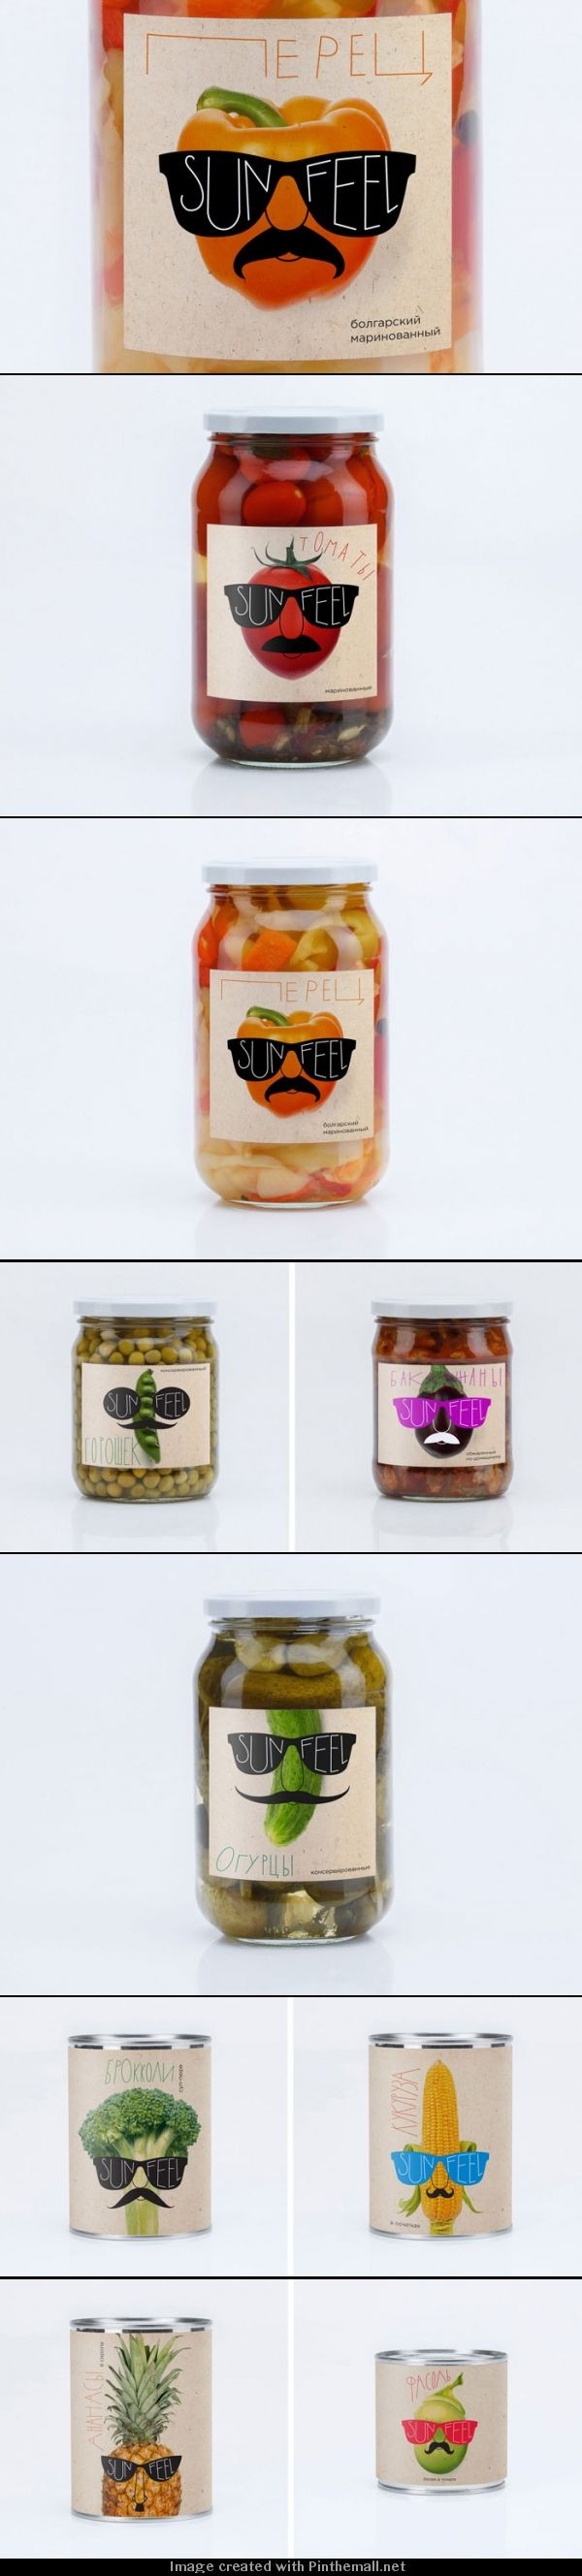 The cutest veggie and fruit #packaging PD - created via http://www.thedieline.com/blog/2013/9/23/sunfeel.html